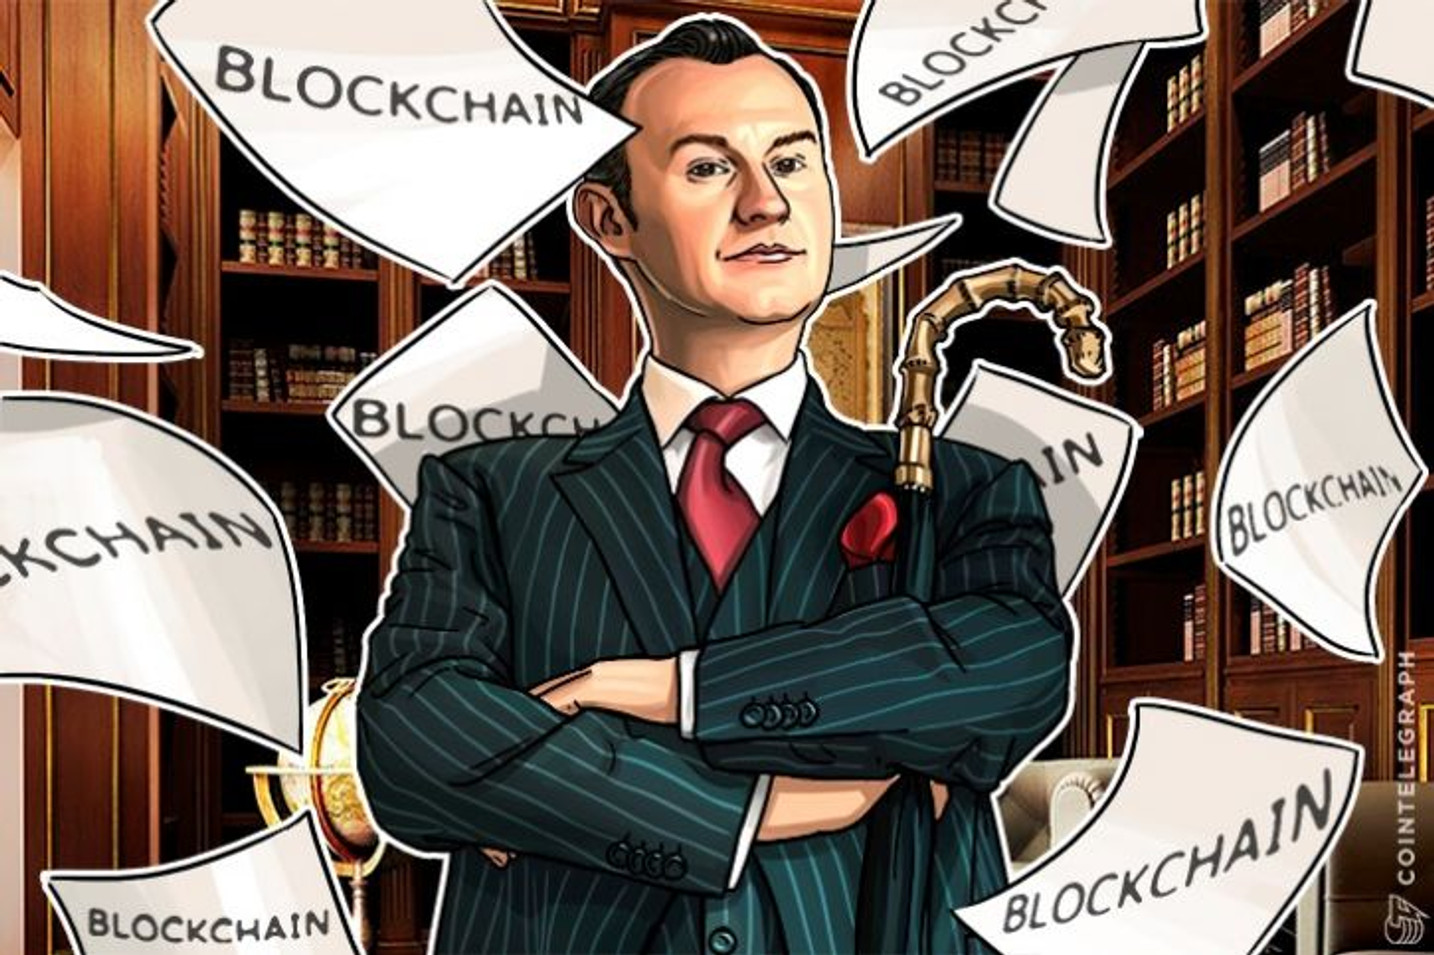 Russian PM Orders Research On Blockchain Implementation in Government